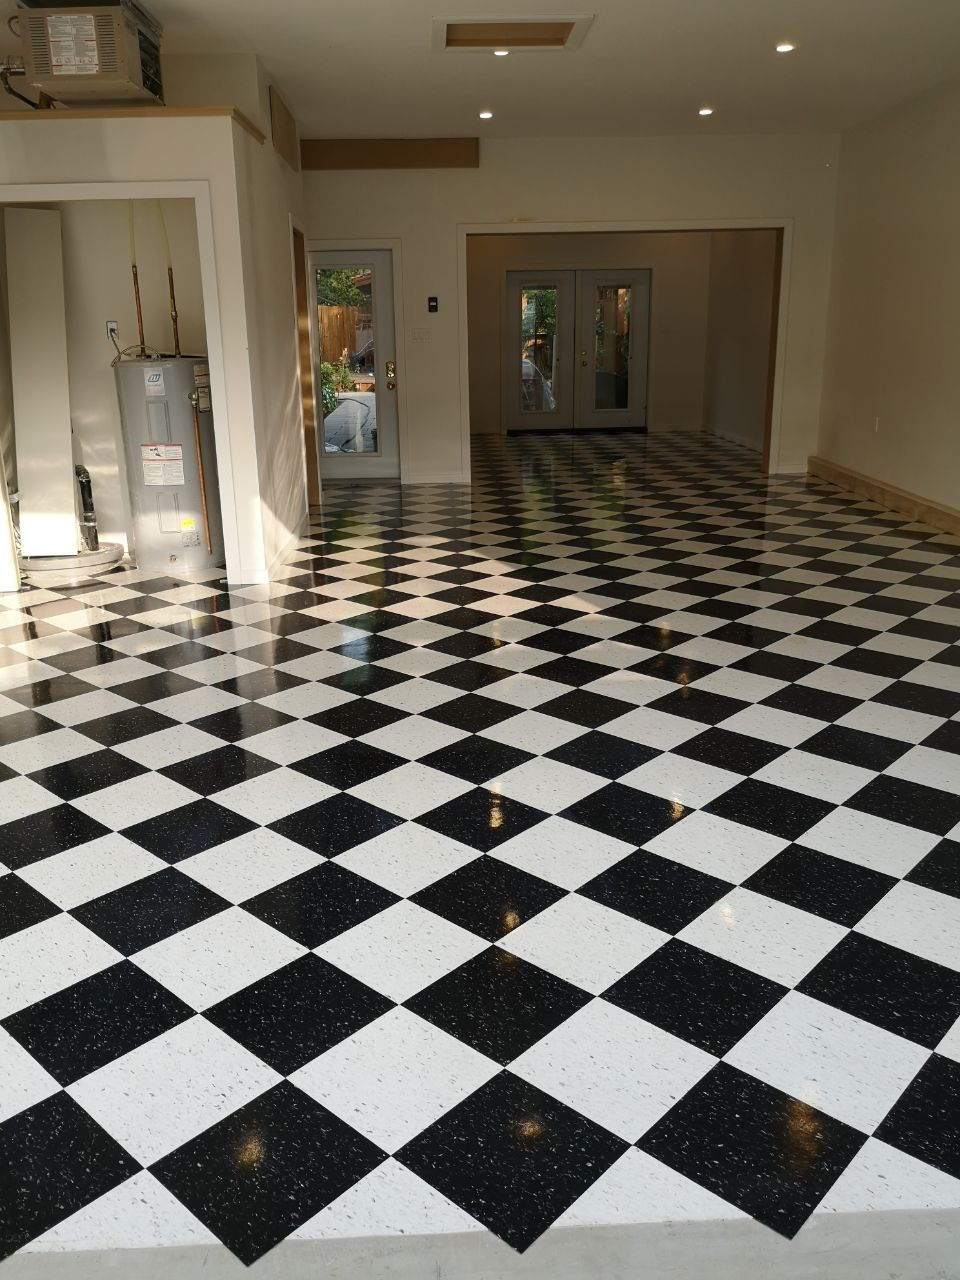 view of a clean floor